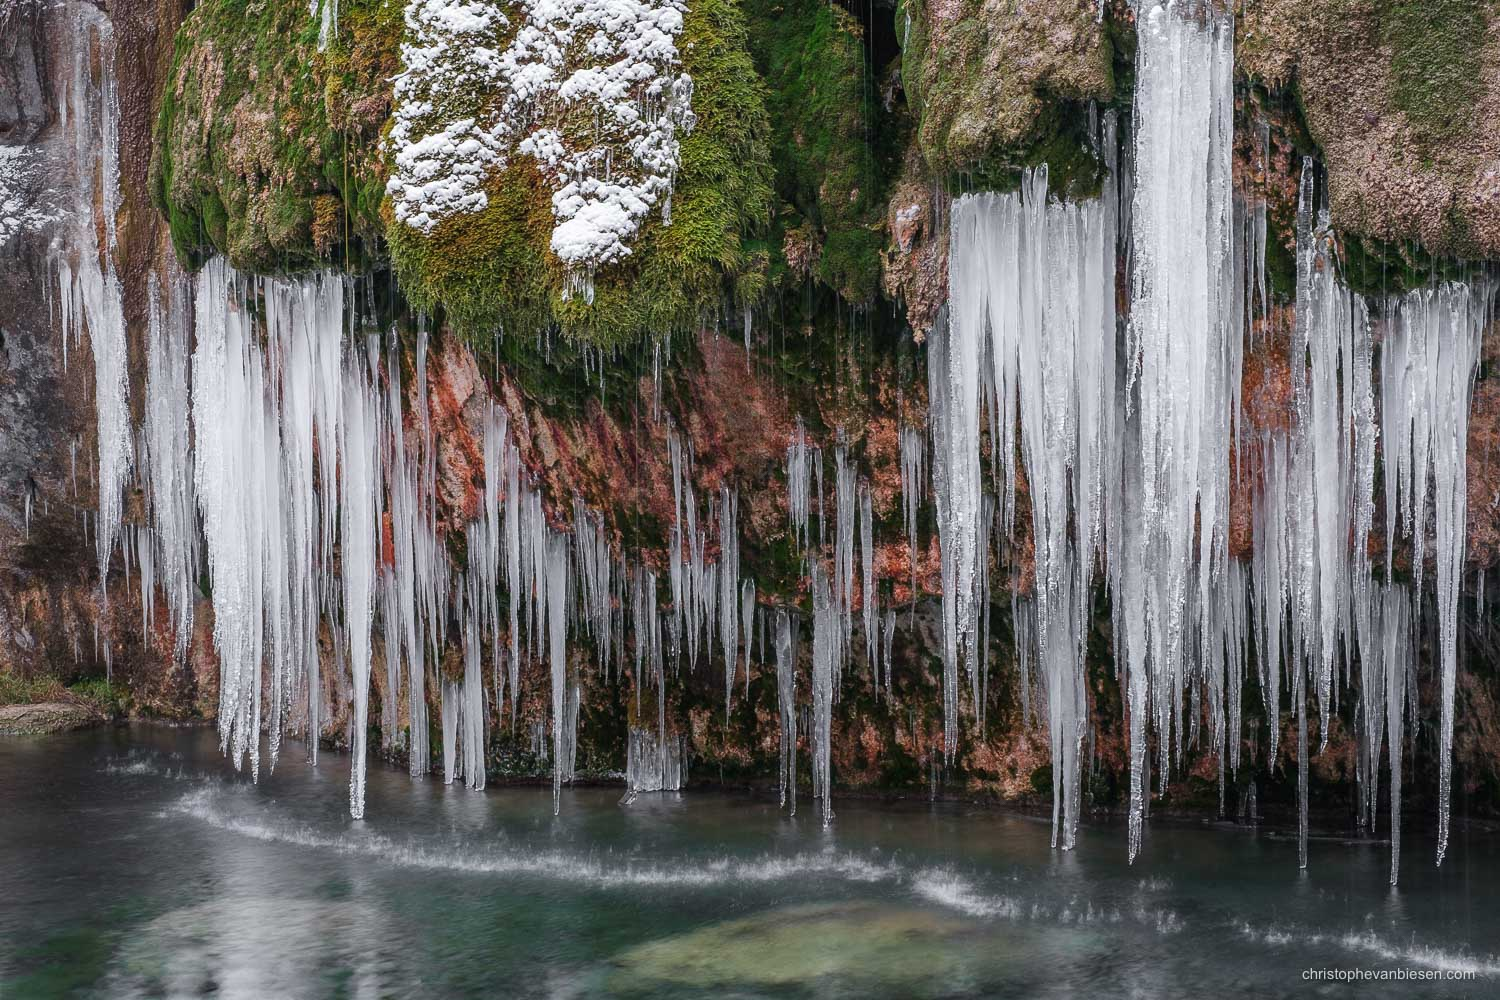 Visit the Mullerthal - Luxembourg - Frozen waterfall in Luxembourg's Mullerthal region during a very cold winter - Melting Cascade